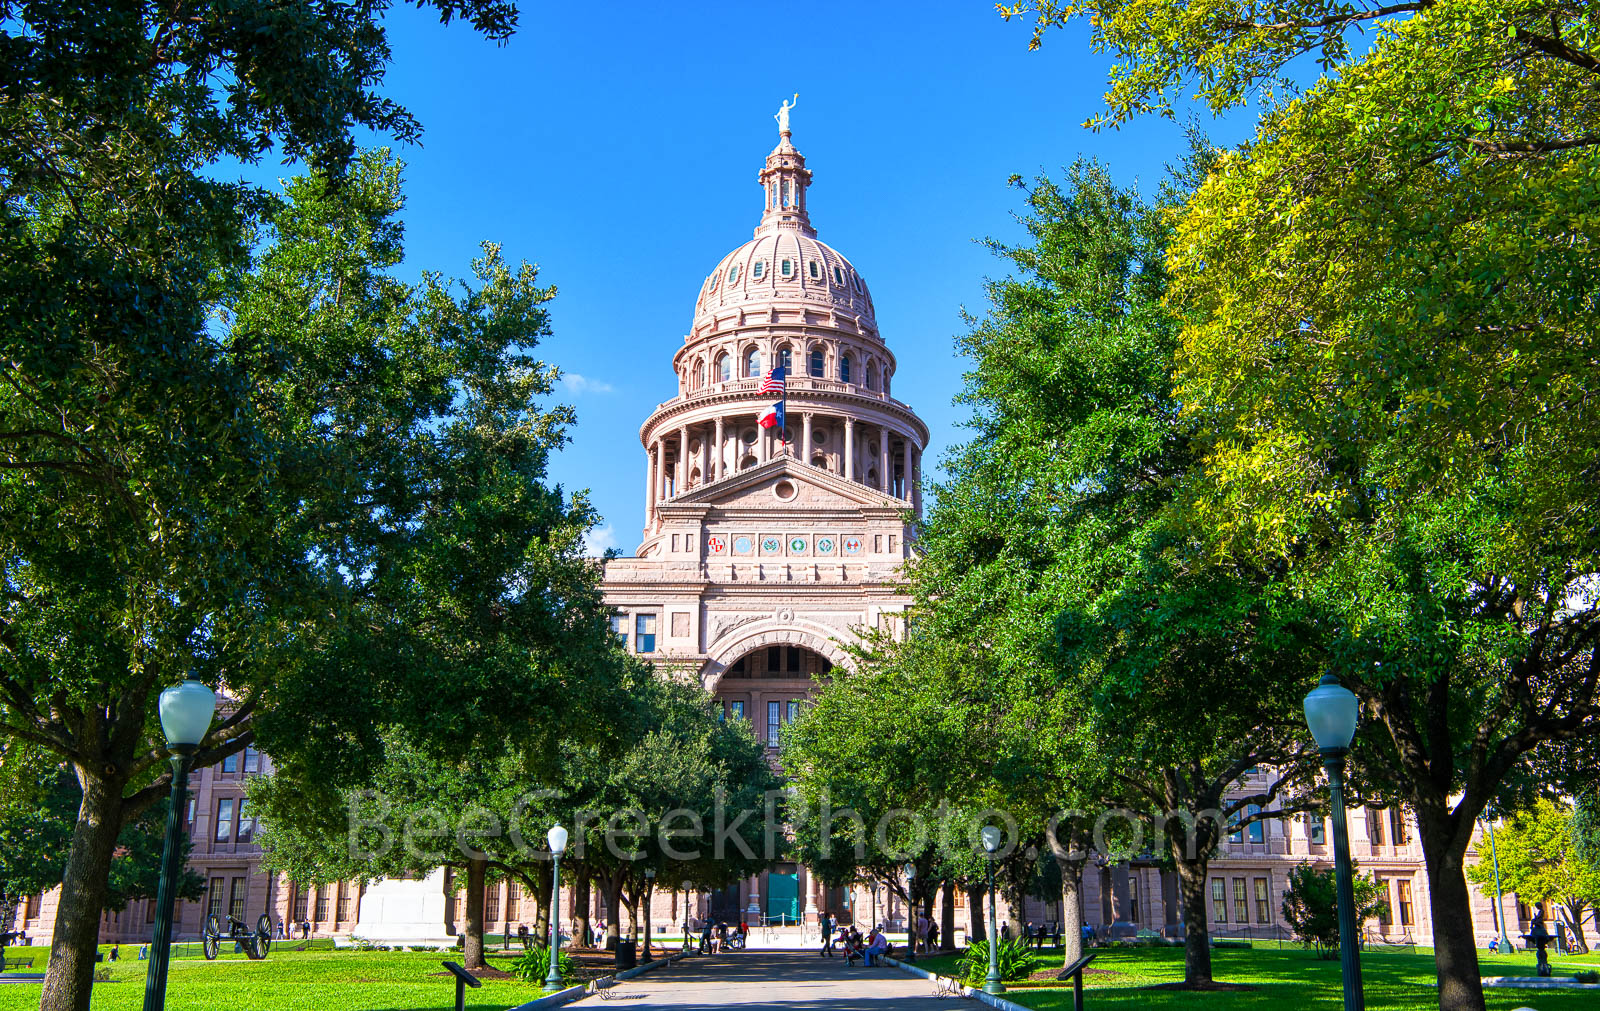 Capitol, Capital, Texas, building, Austin, south view, Congress ave., Capitol of Texas, Dome, red granite, renaissance rivival, architecture, state capital, state capitol, images of texas, photo